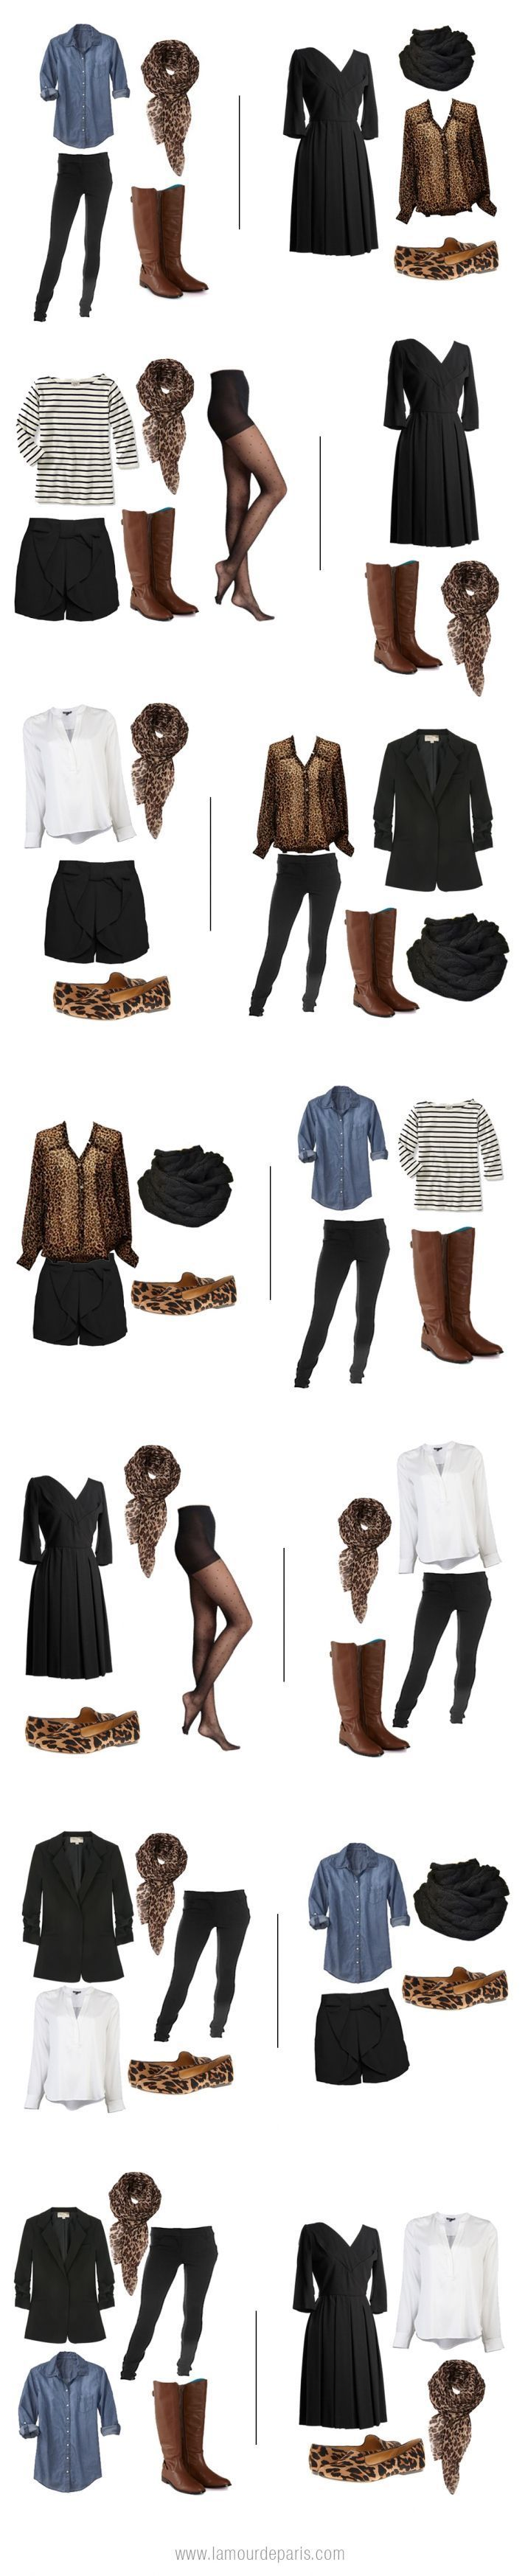 Two weeks worth of outfits from one carry on ... Just switch the animal print with something else and it's perfect!